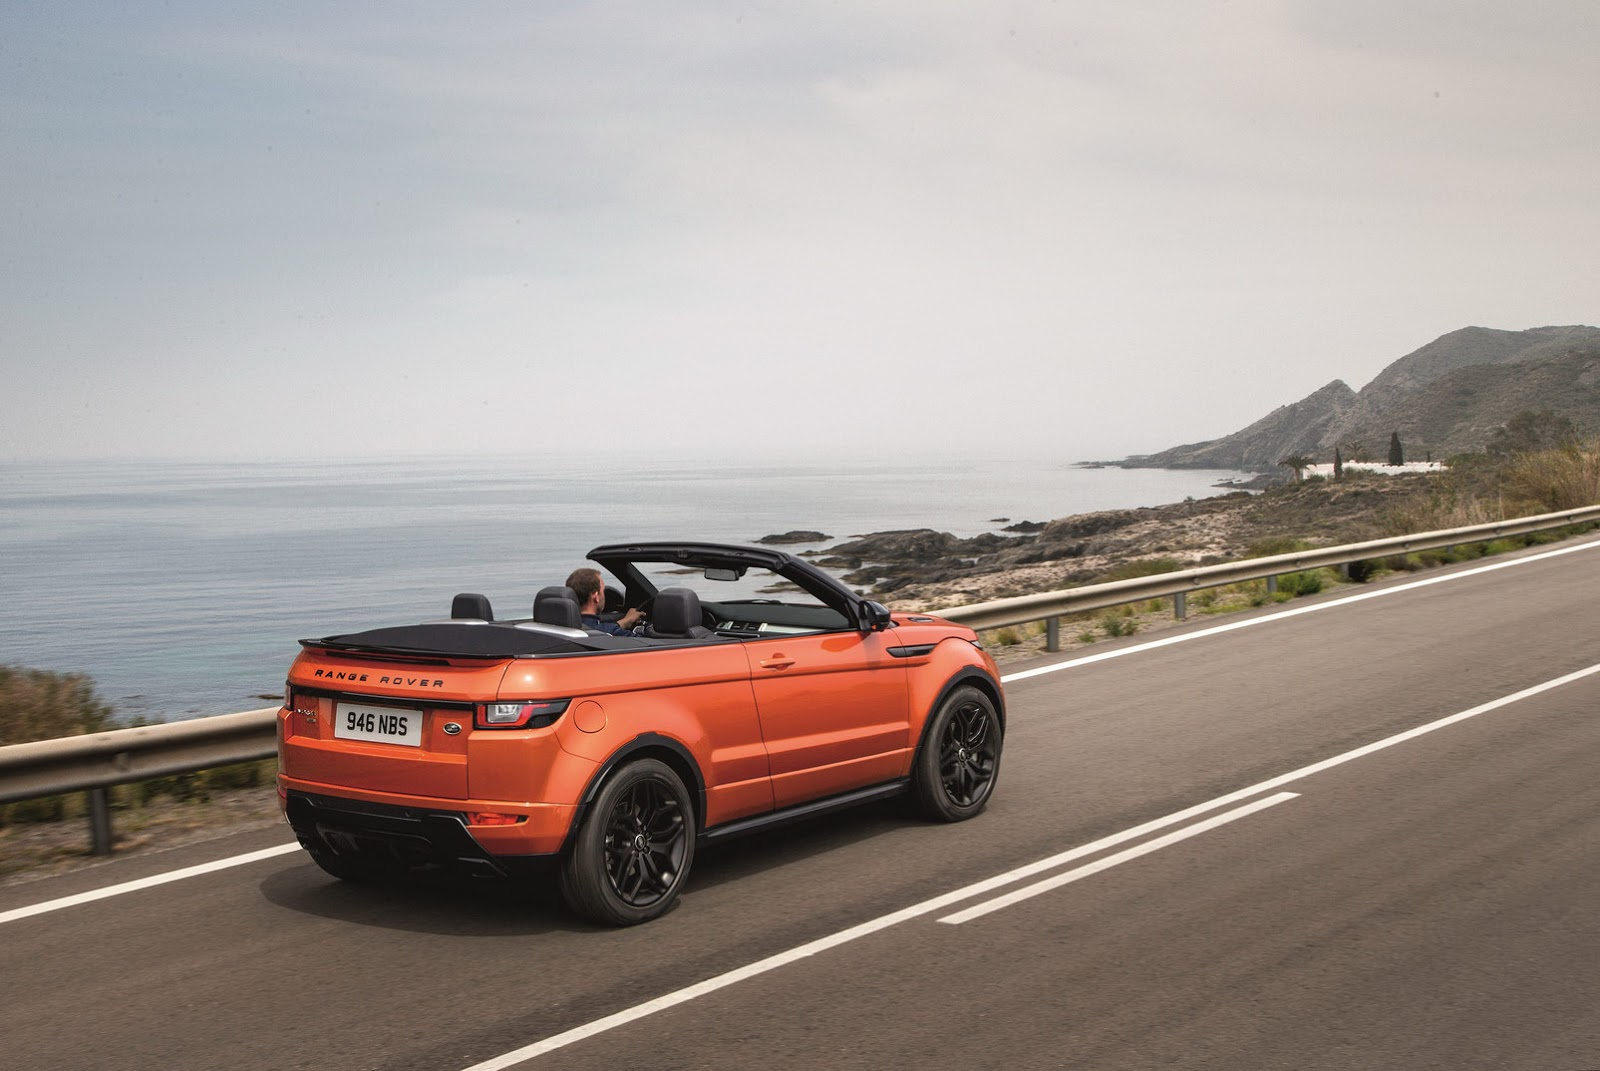 this is range rover s 2017 evoque convertible priced from 50 475 55 pics videos. Black Bedroom Furniture Sets. Home Design Ideas